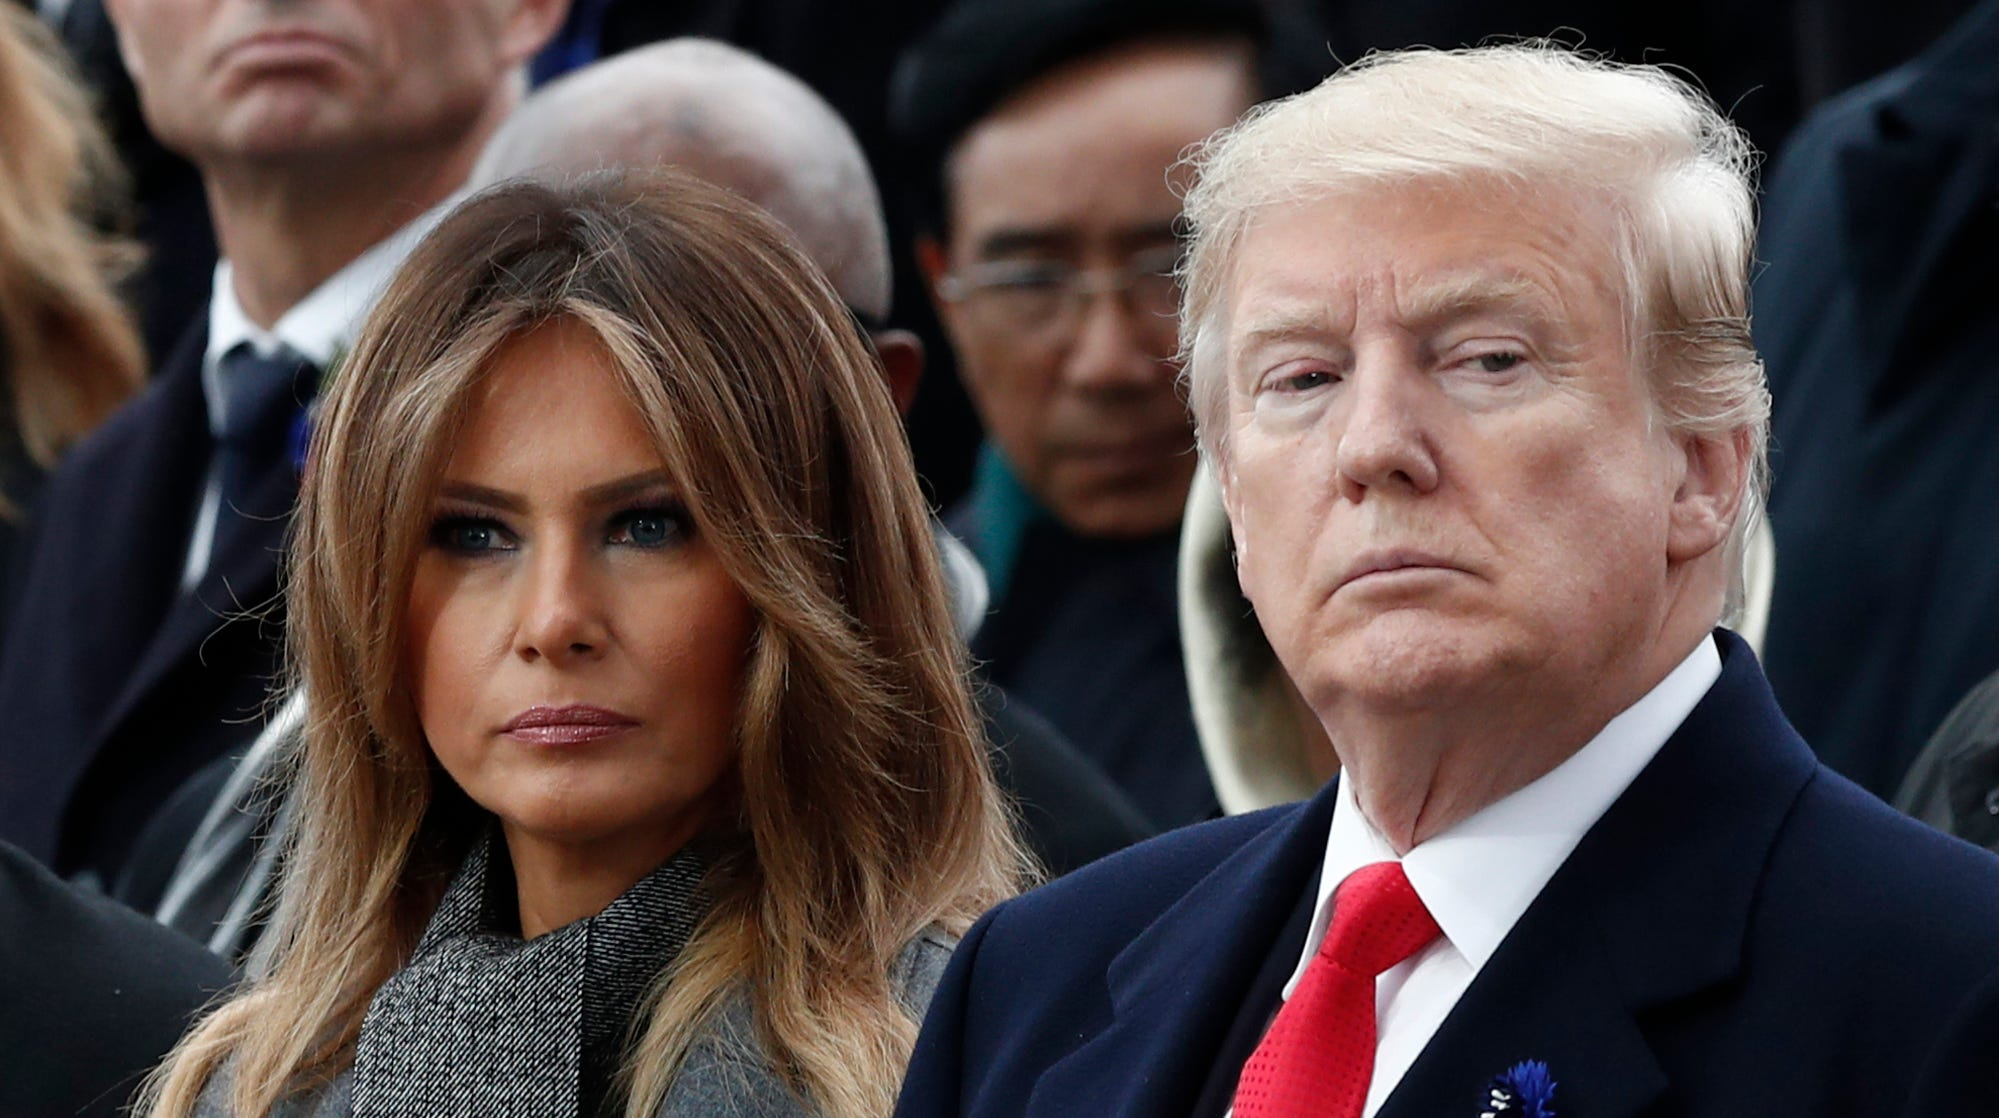 U.S. President Donald Trump and first lady Melania Trump are skipping the Kennedy Center Honors Ceremony, again.